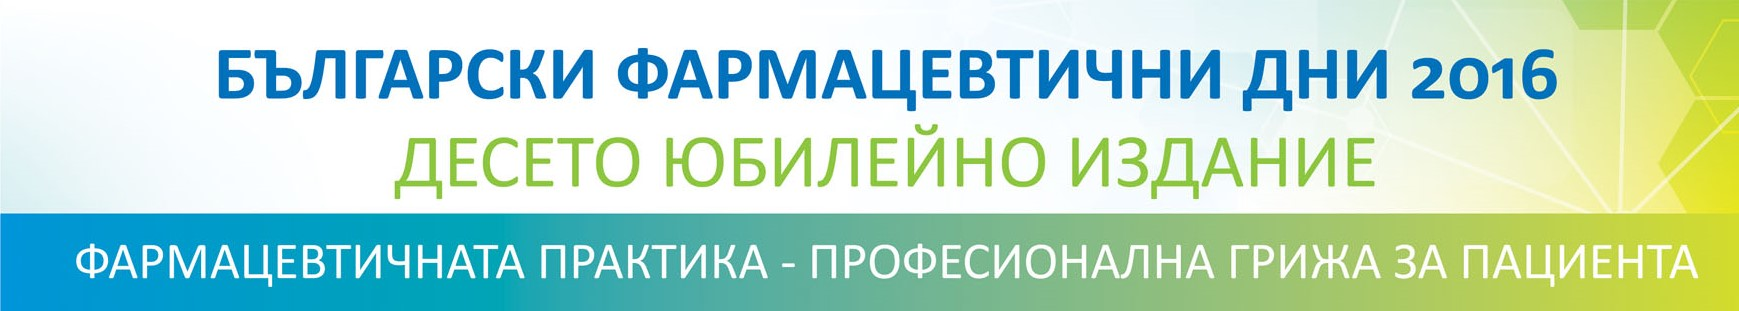 Bulgarian Pharmaceutical Days – Tenth Anniversary Event